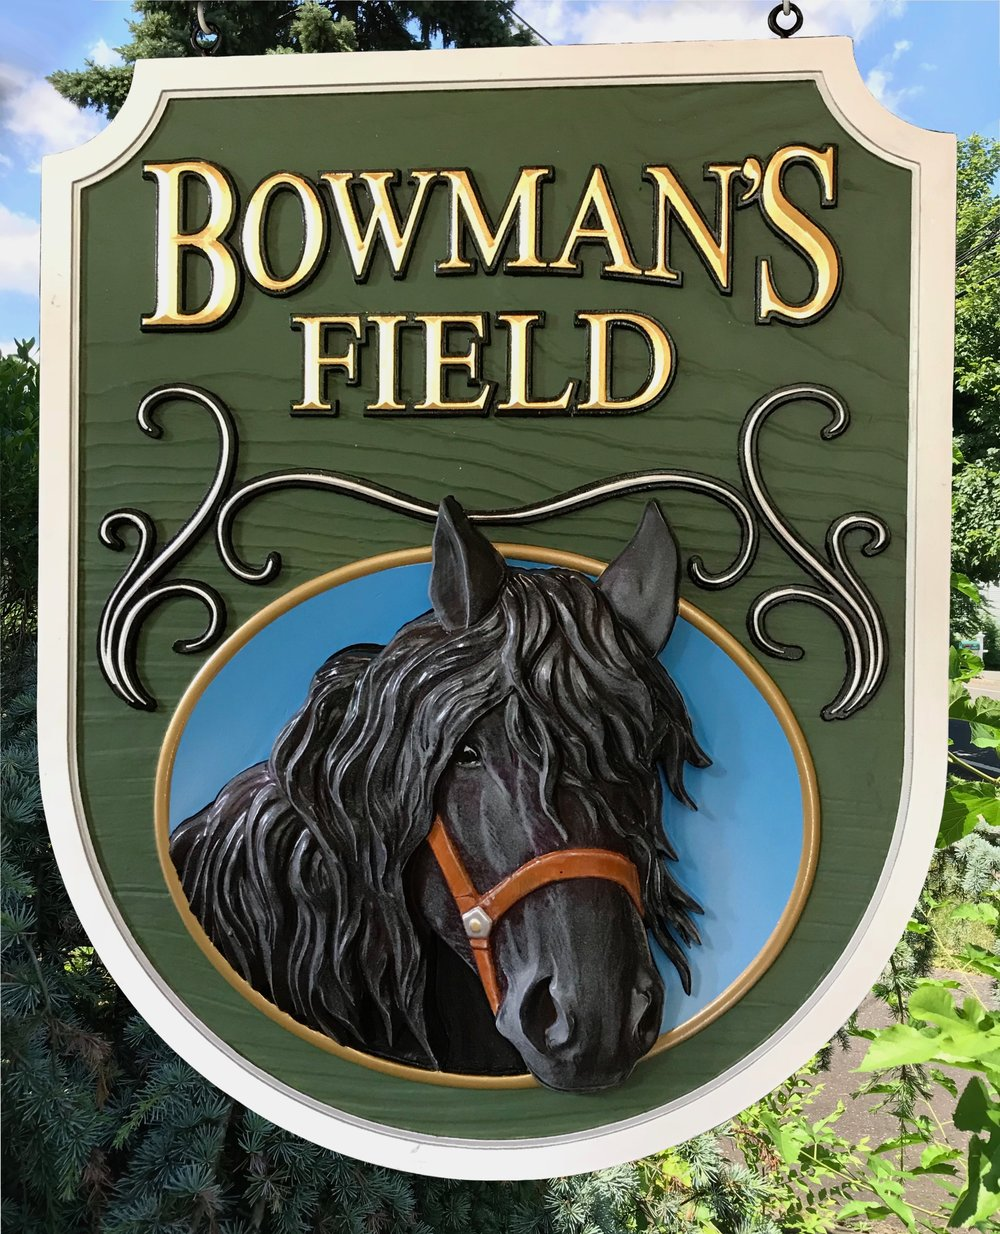 Today we finished a sign for a great customer and lover of Friesian horses. This custom carved sign was created for his farm in Jackson NJ. I features a 3d sculpted horse against a recessed dish for extra dimentionality. The raised prismatic lettering is 23K gold leaf against a faux woodgrain background. It is carved from High Density Urethane for long lasting beauty.